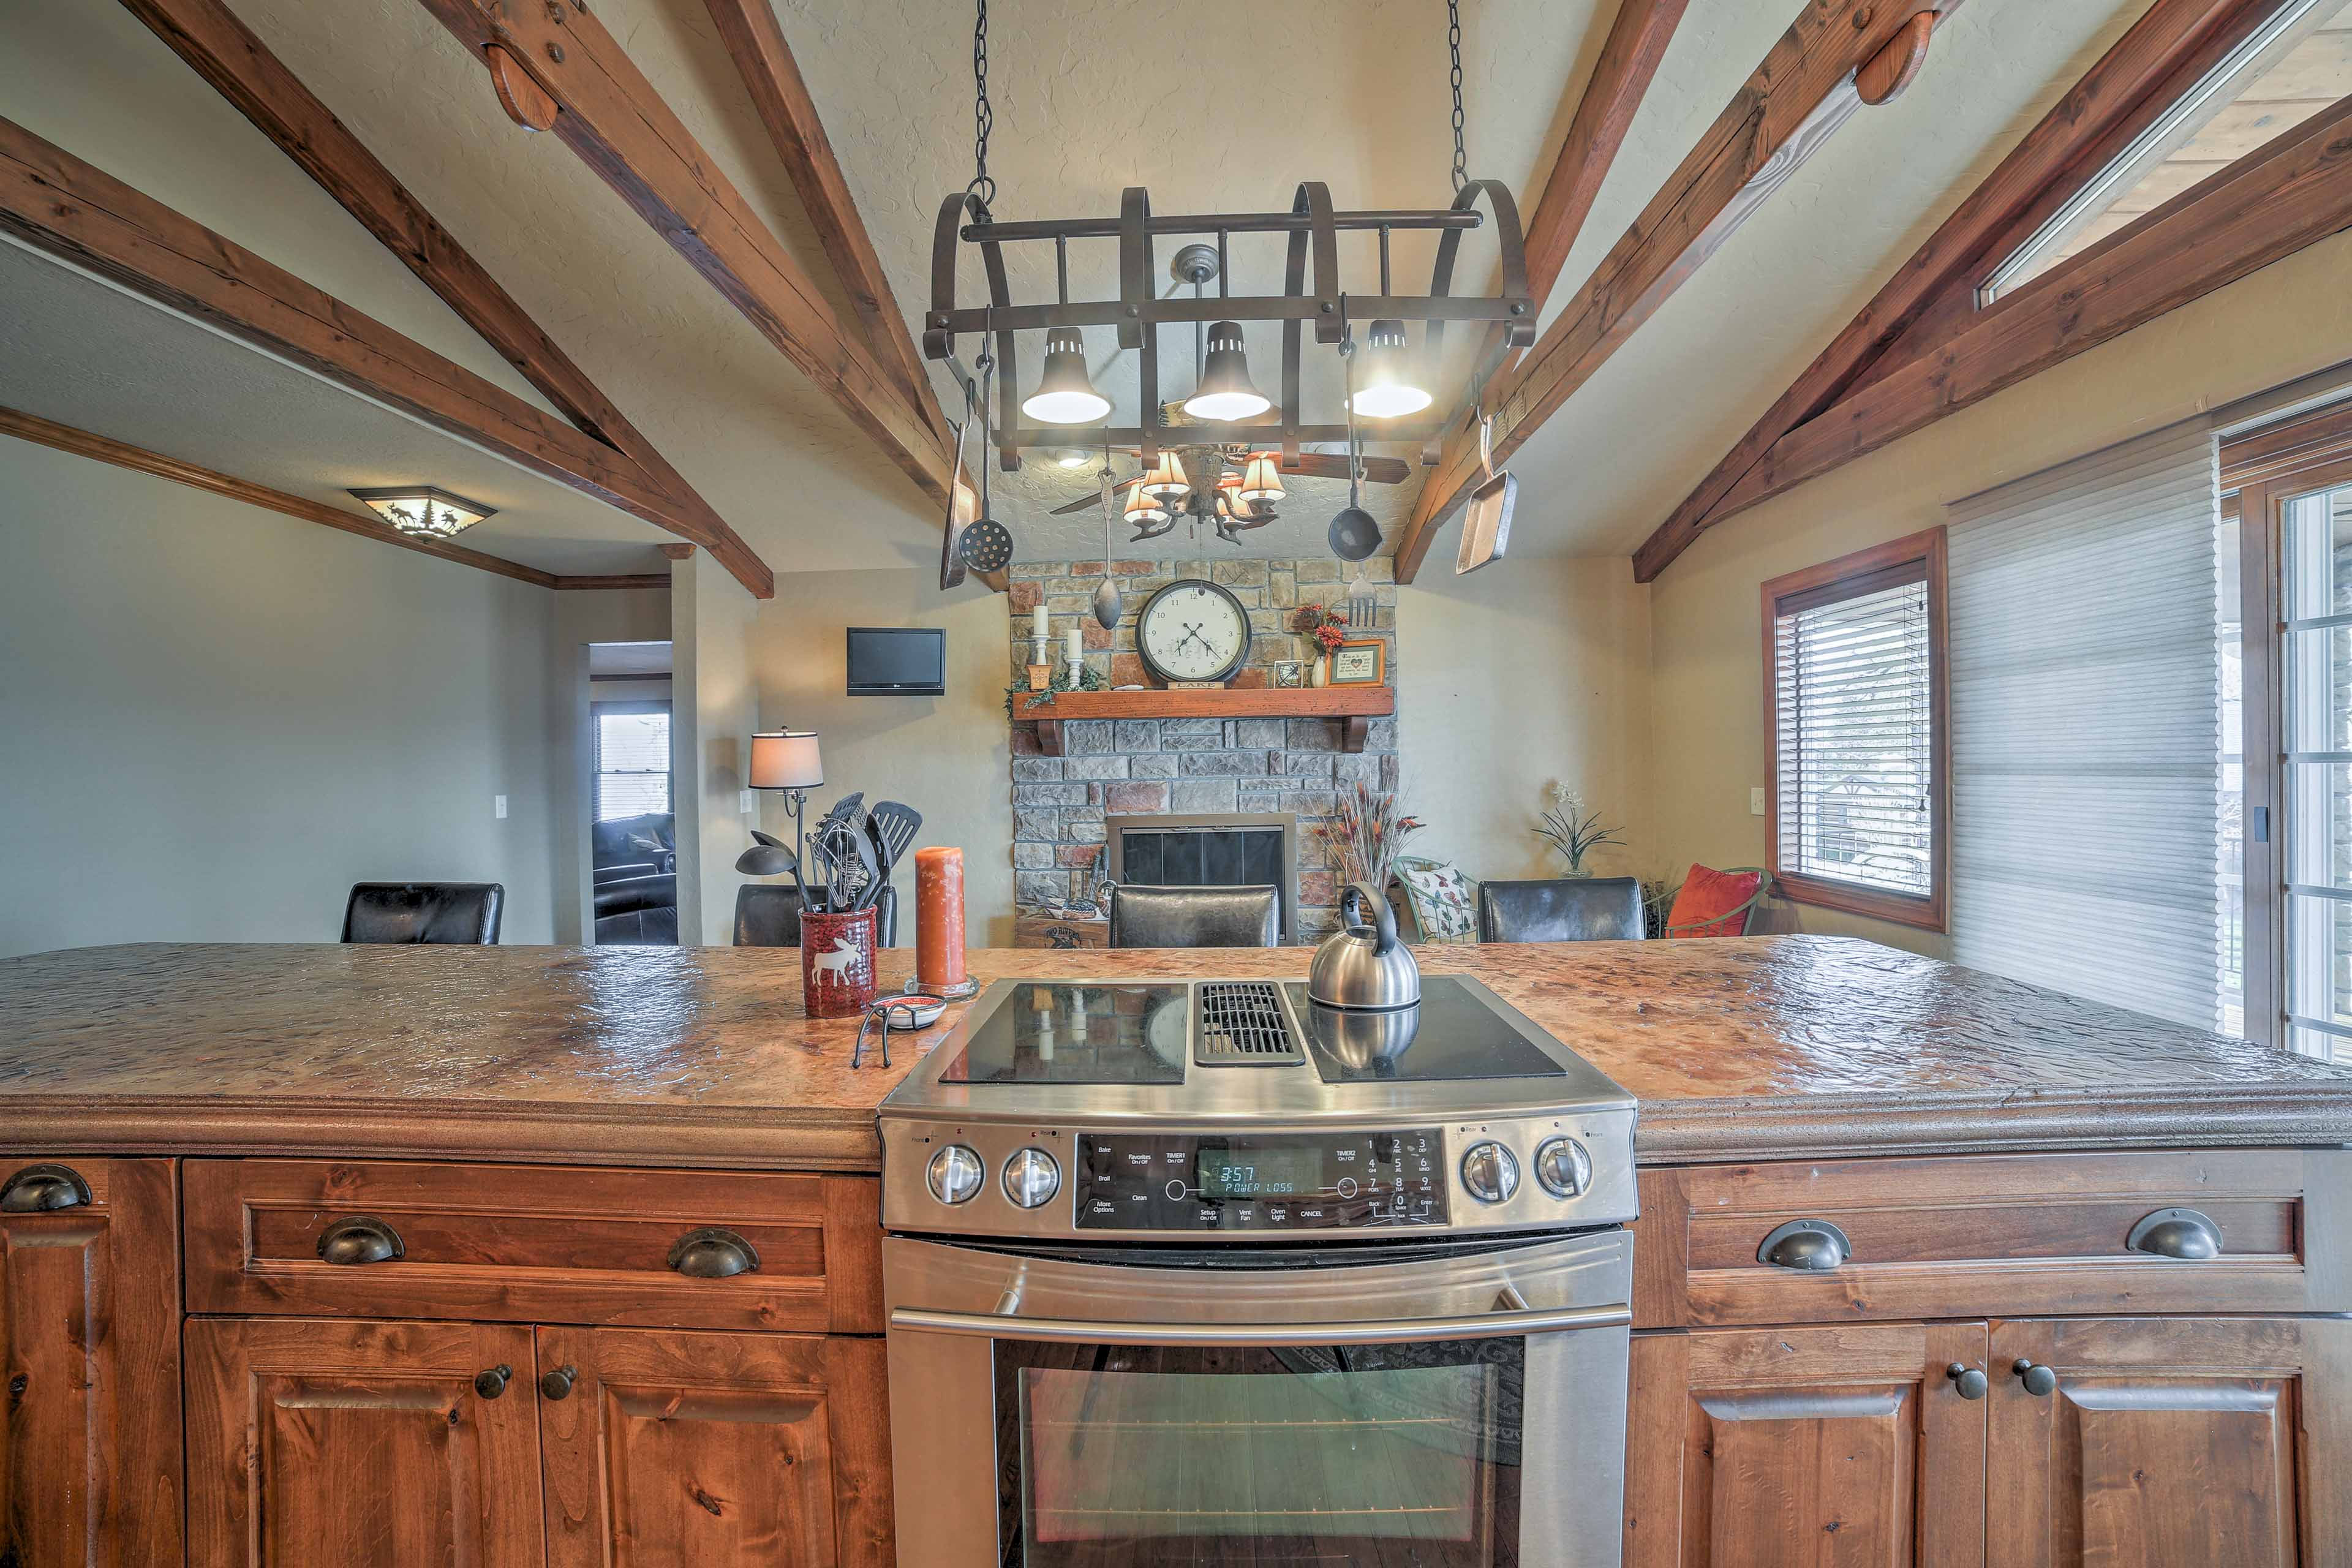 Prepare dinner on the stainless steel stove, lit by a rustic chandelier.